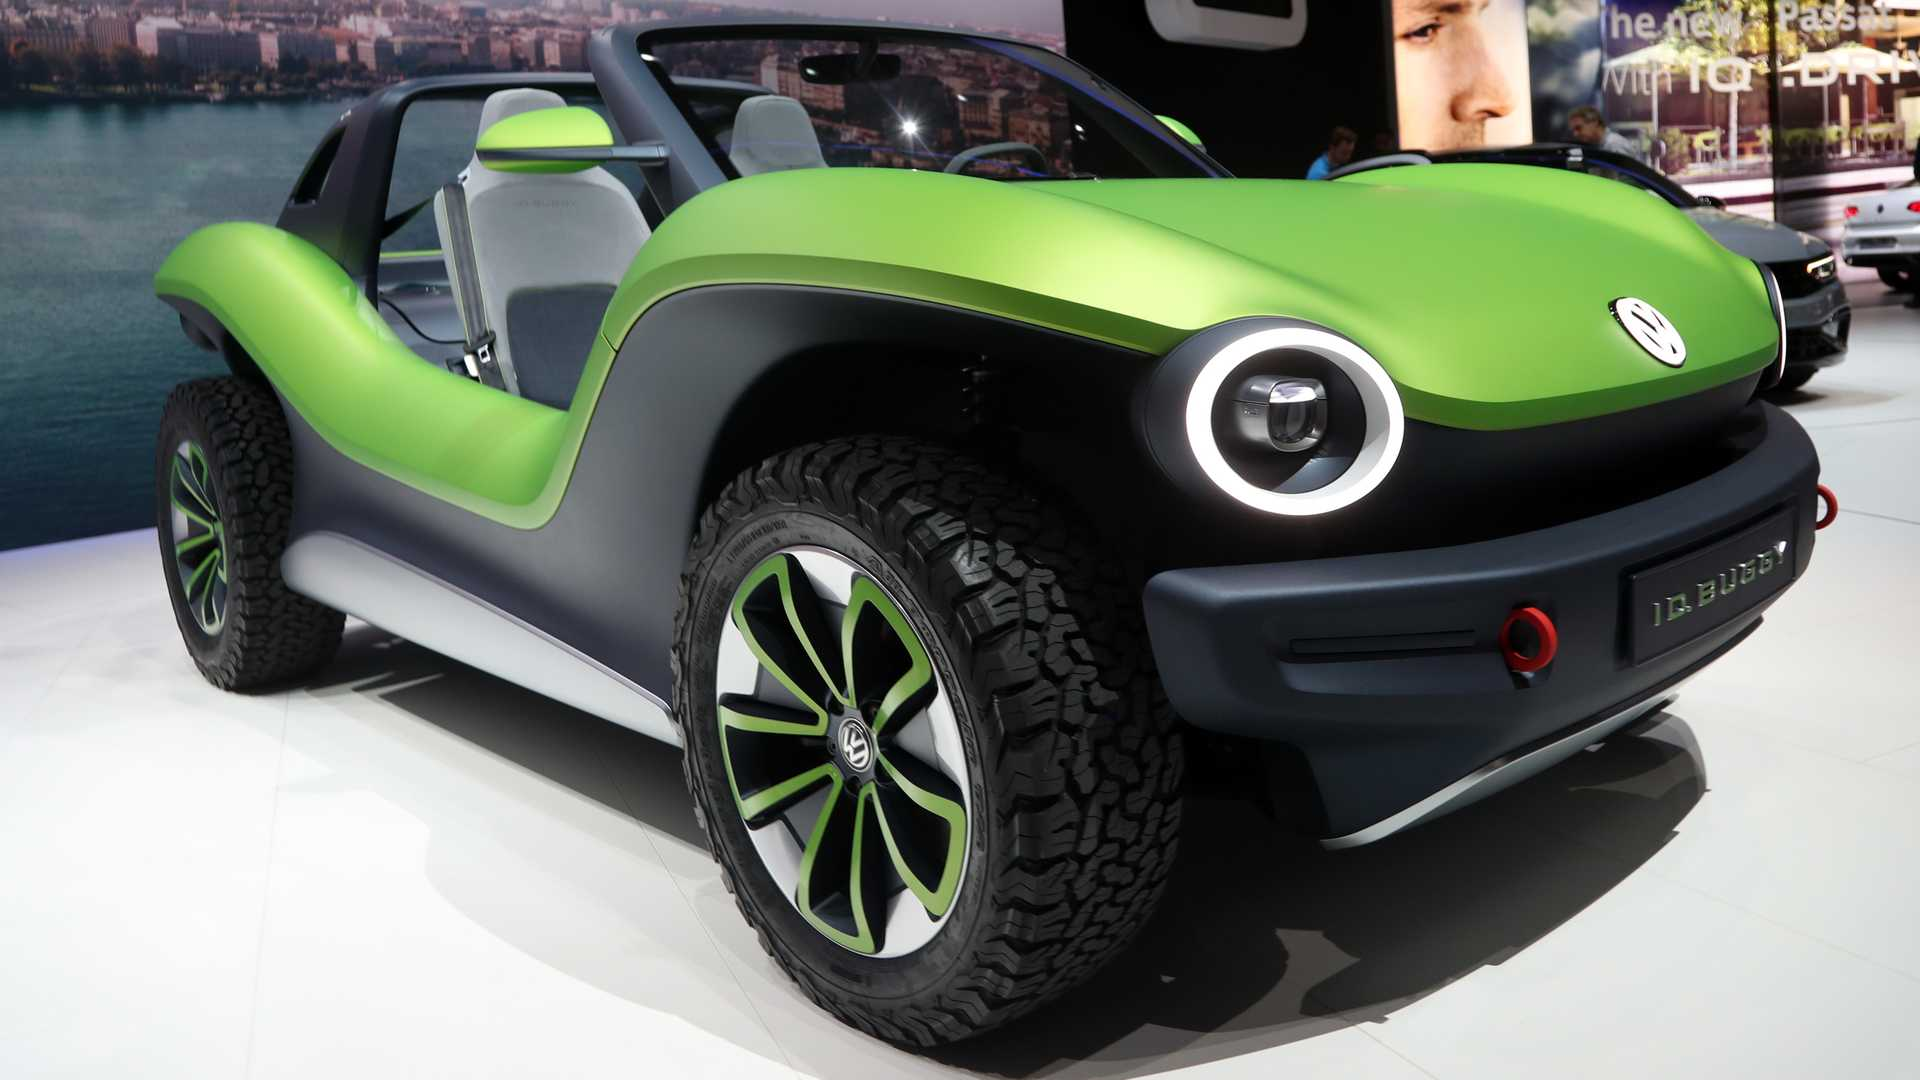 Production Volkswagen I.D. Buggy Would Be A Low-Volume Halo EV